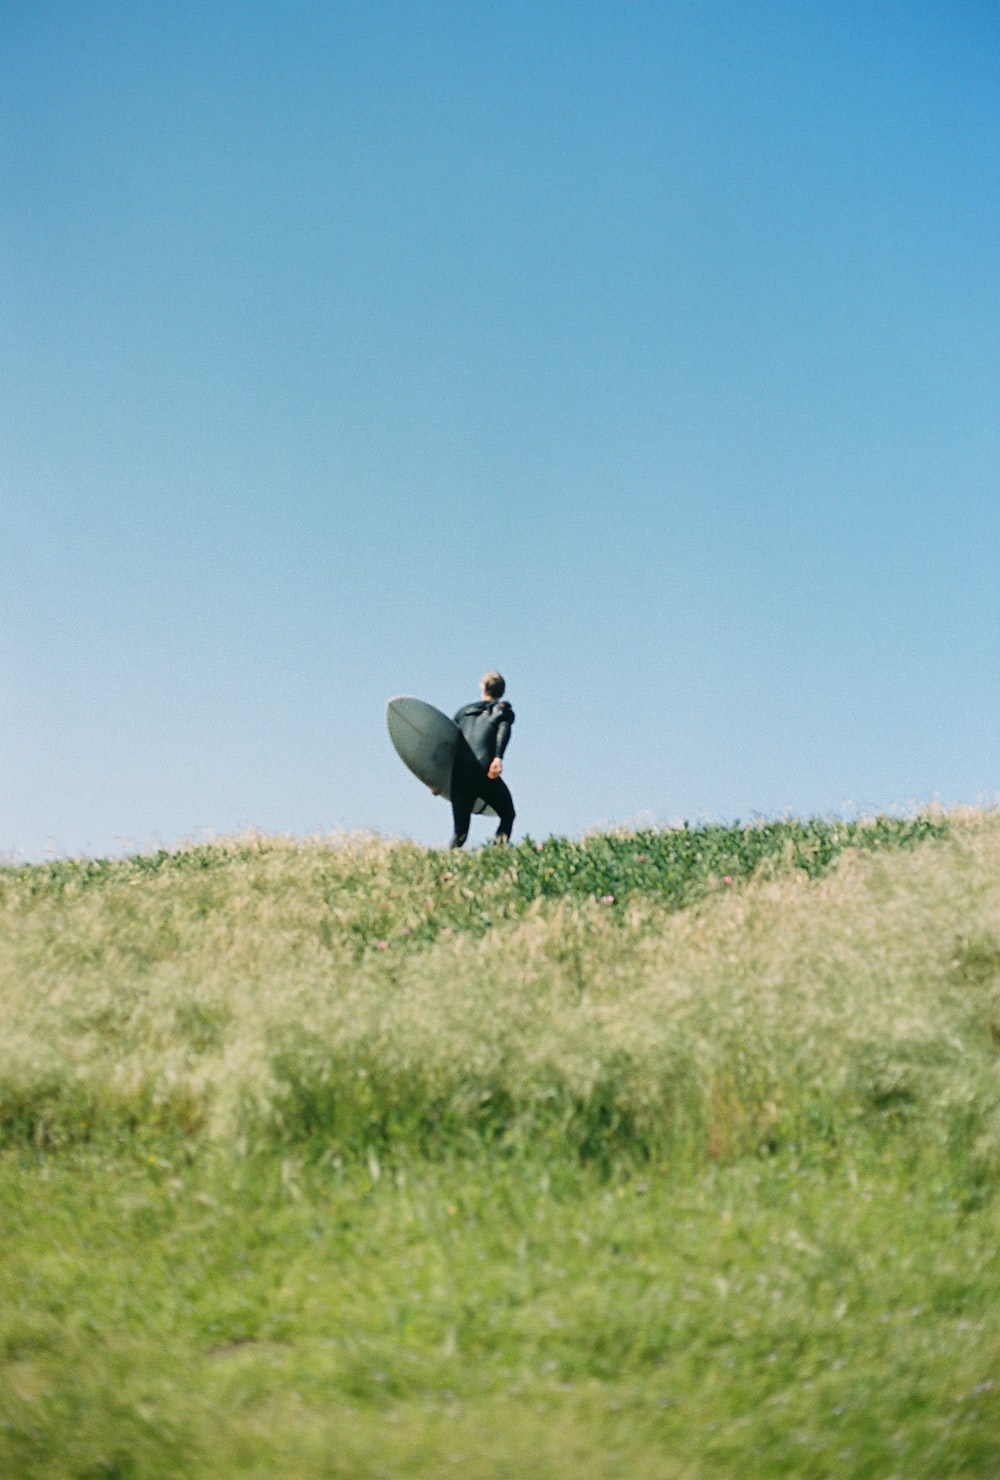 man standing on green grass mountain holding long surfboard